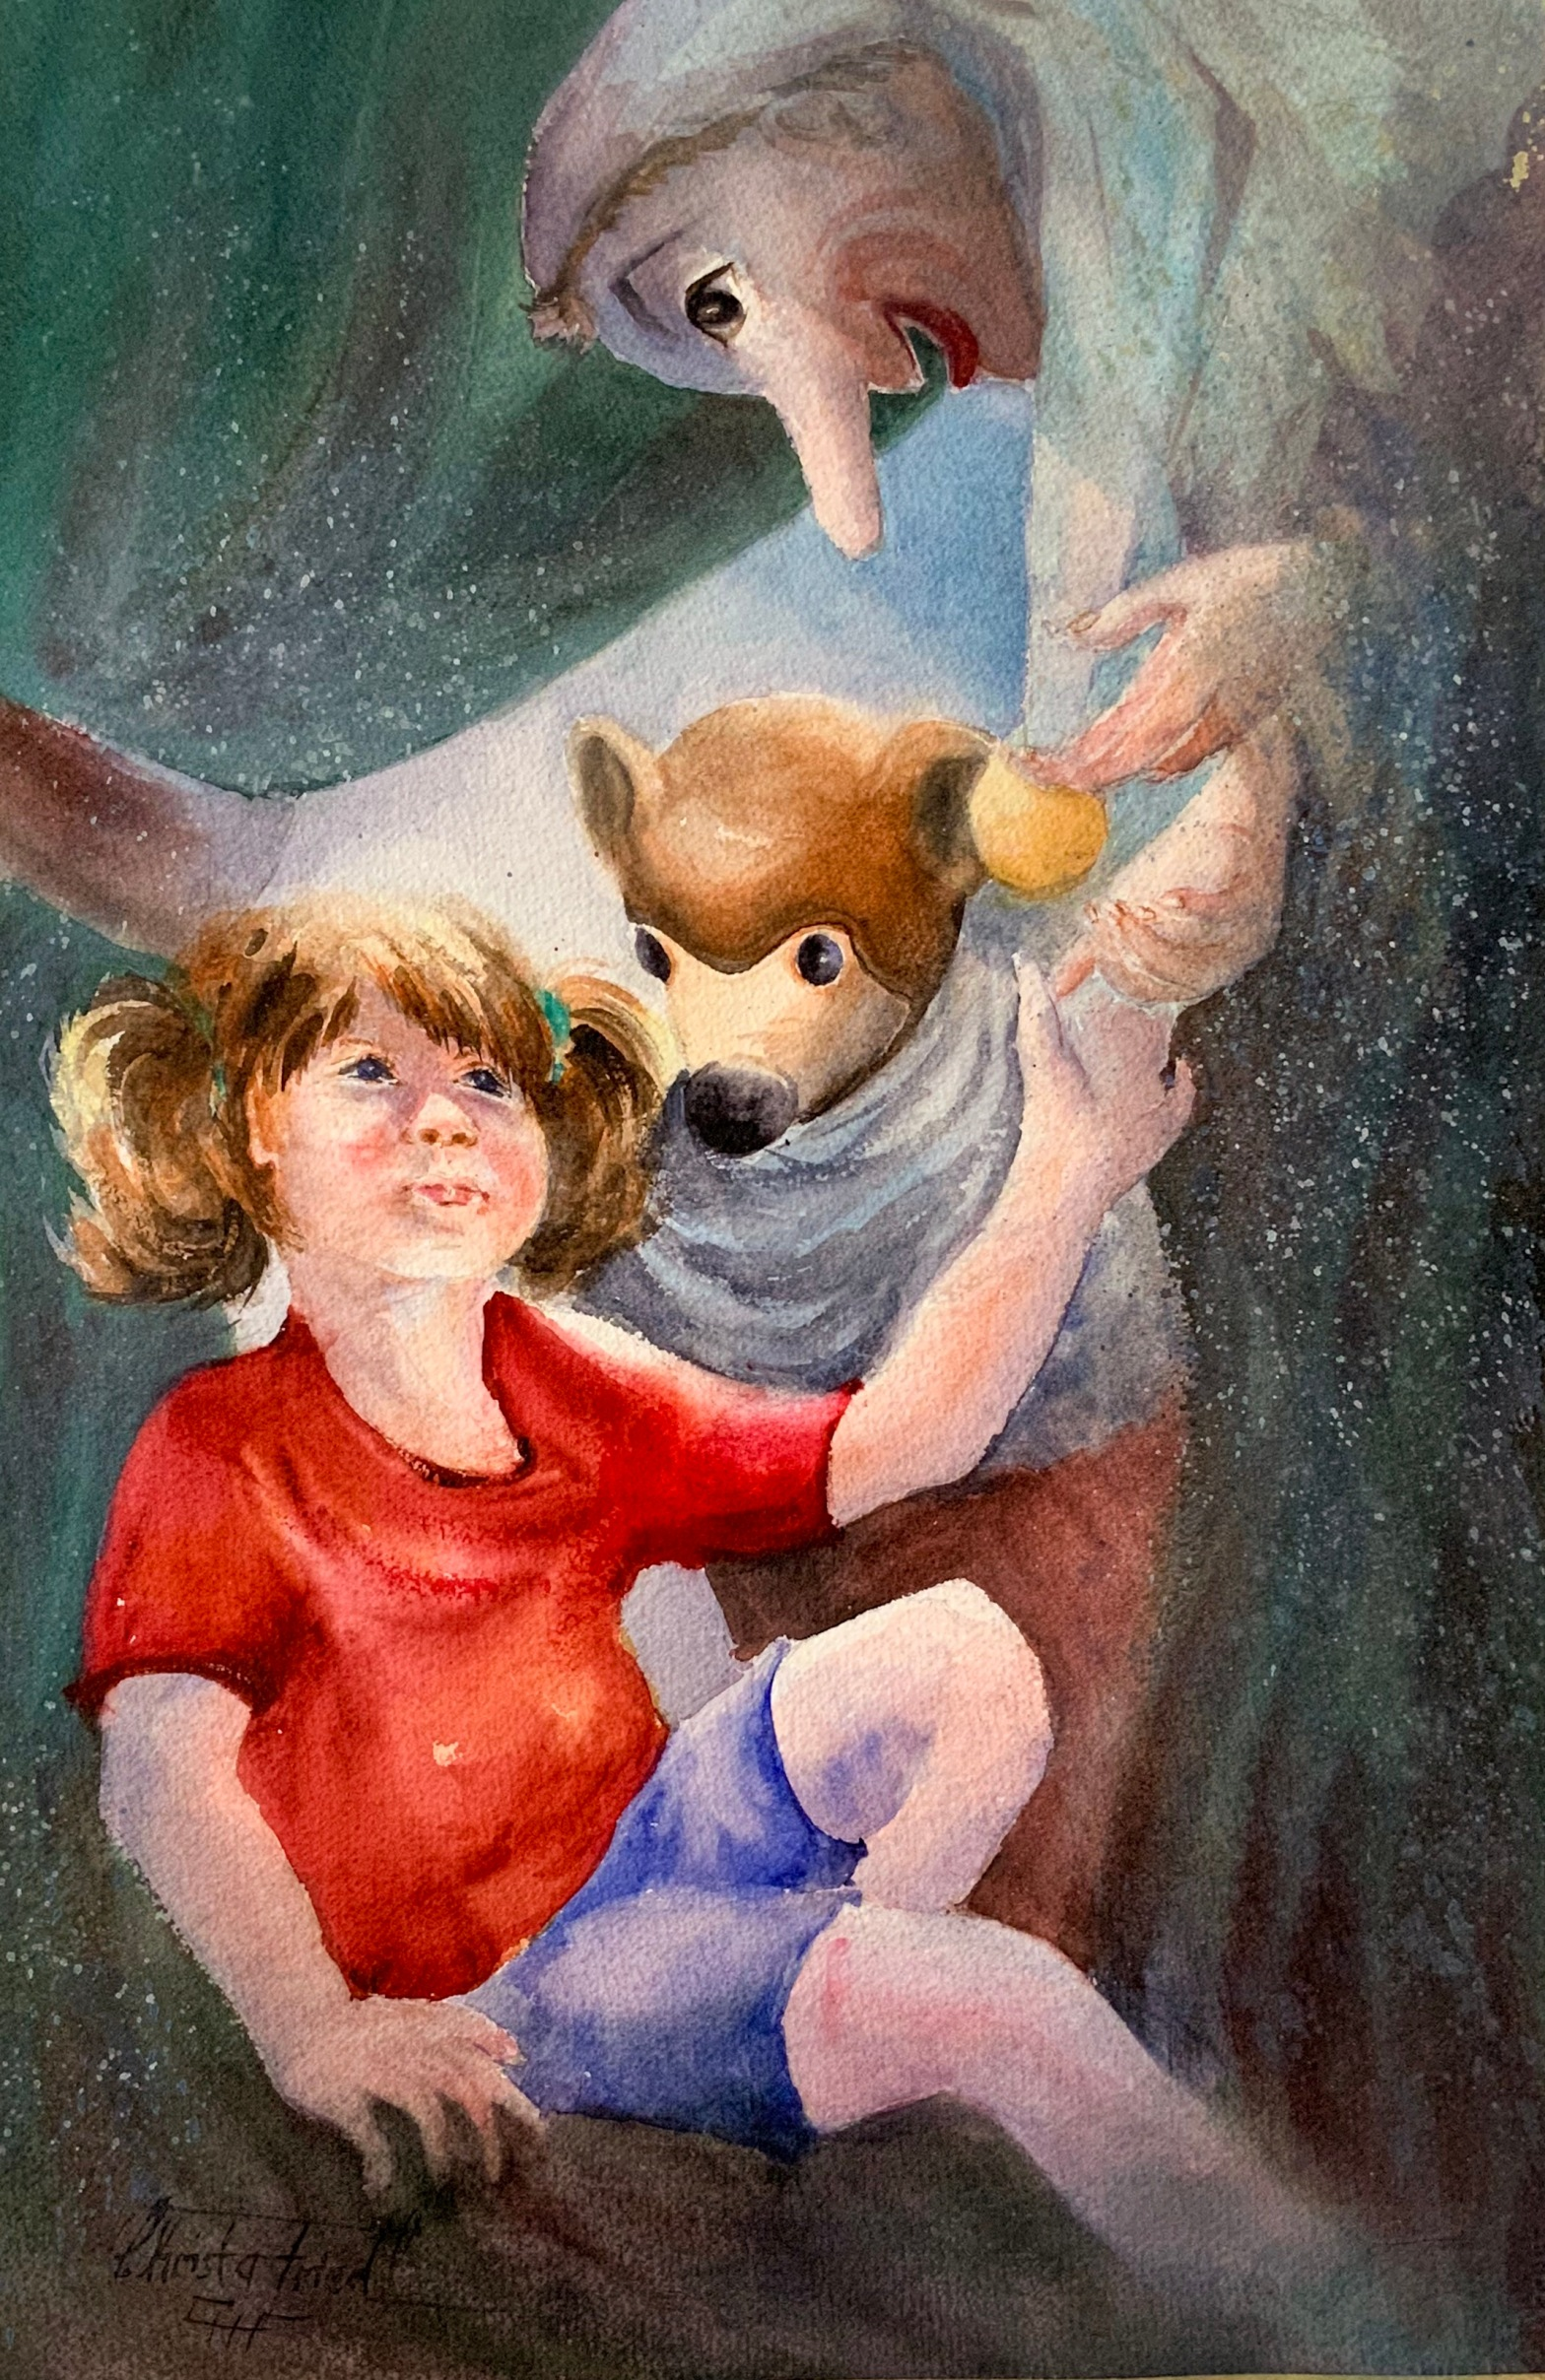 Childhood heroes - puppets, watercolor, 22x15 inches